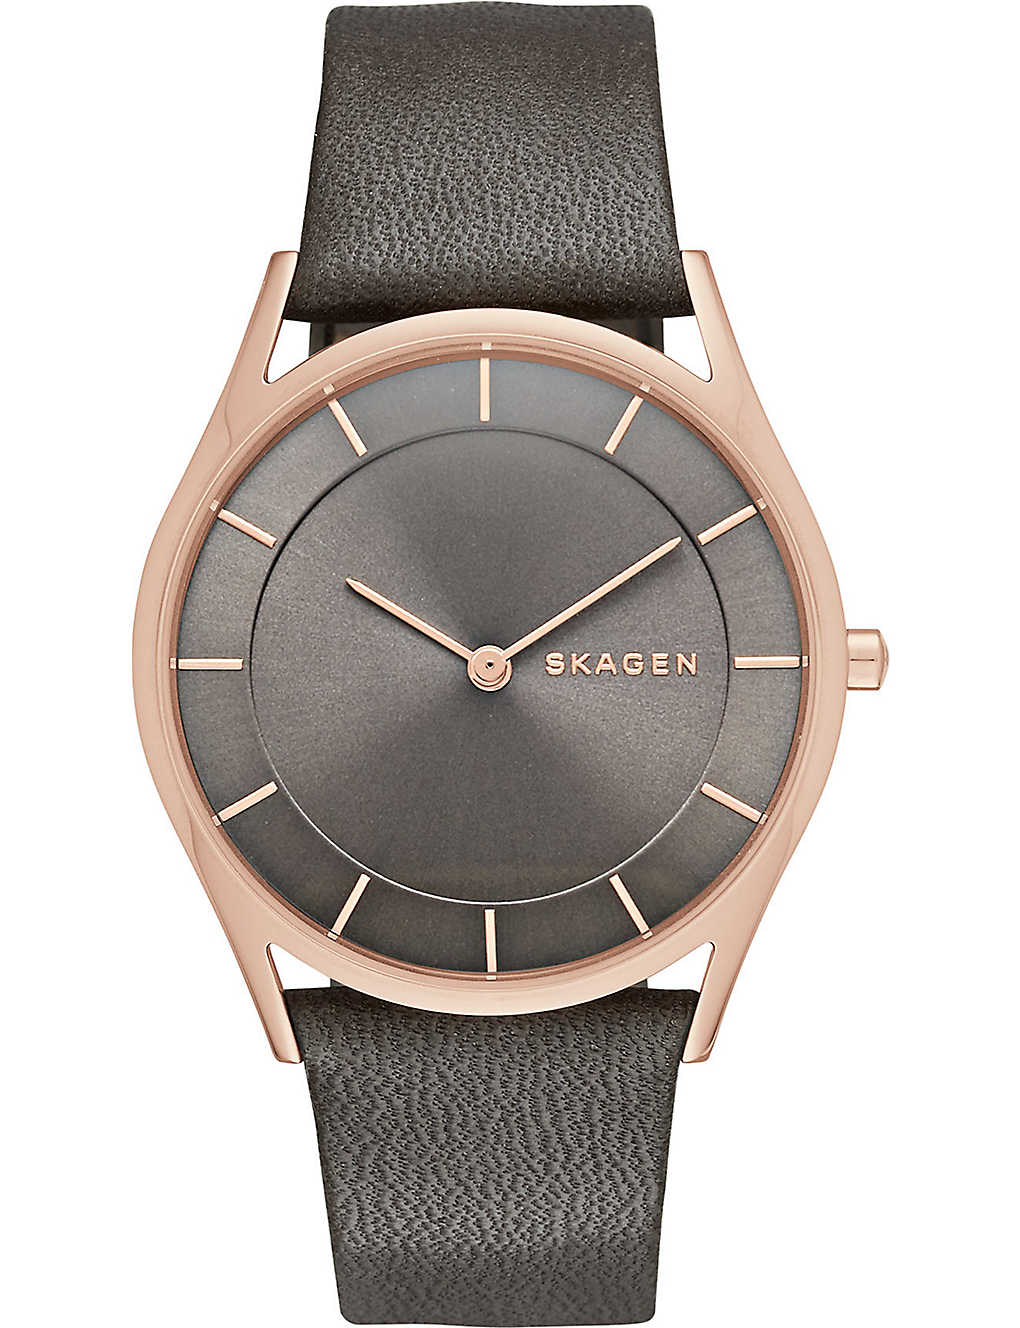 SKAGEN: Skw2346 Holst rose gold-toned stainless steel watch